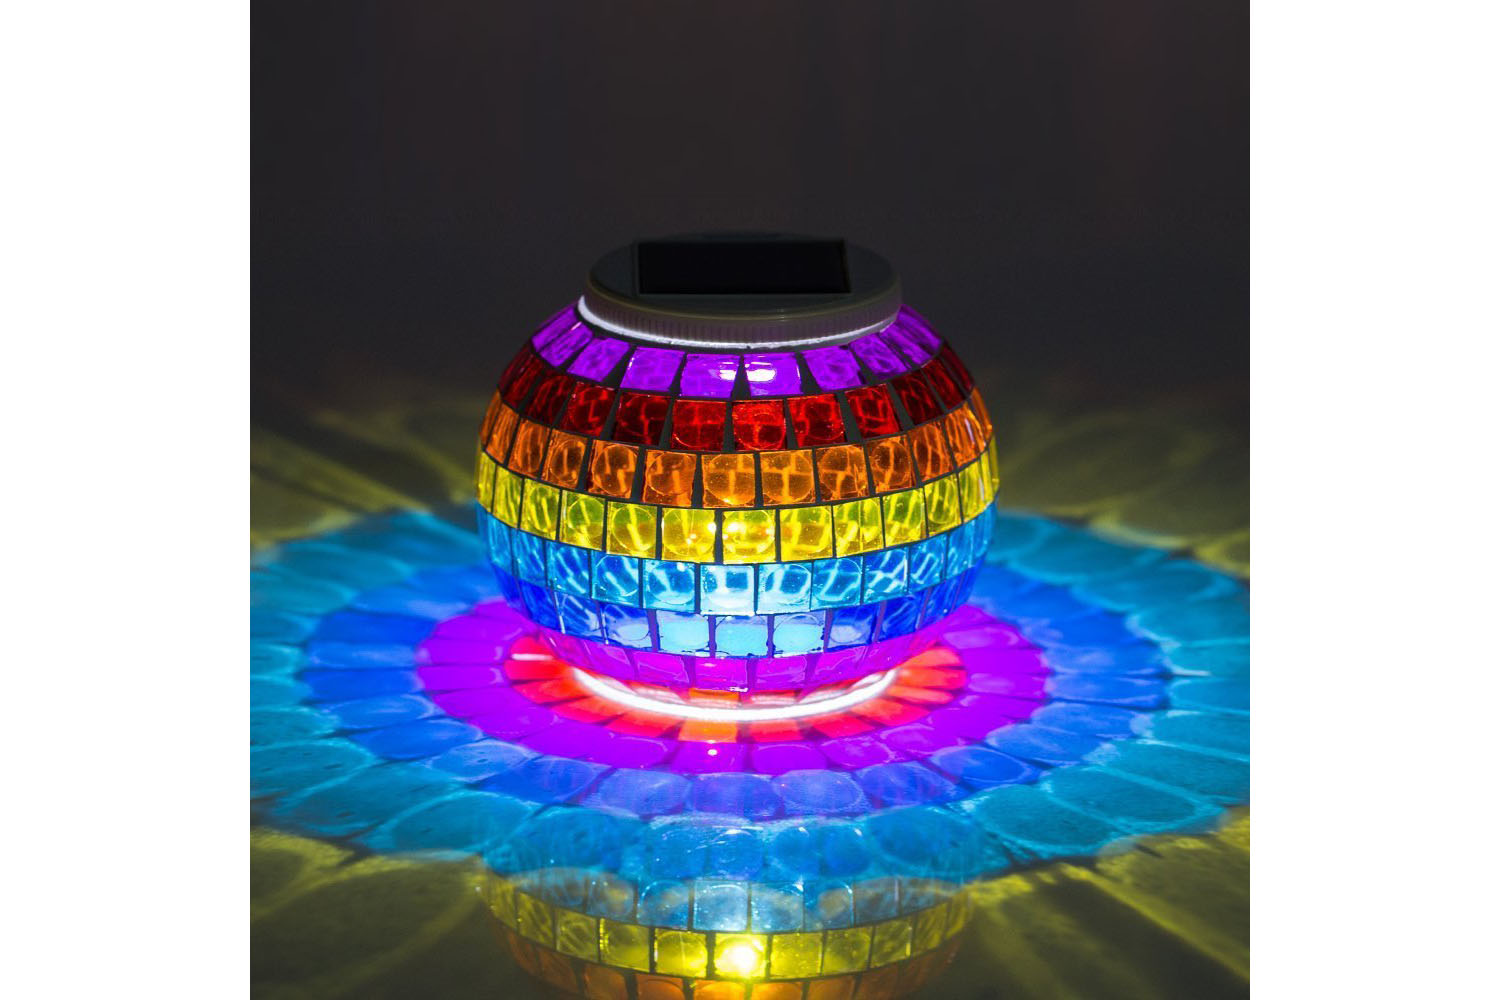 Solar Lantern Changes Color, 3 Color Options, 4.5 stars - $20 (Prime)